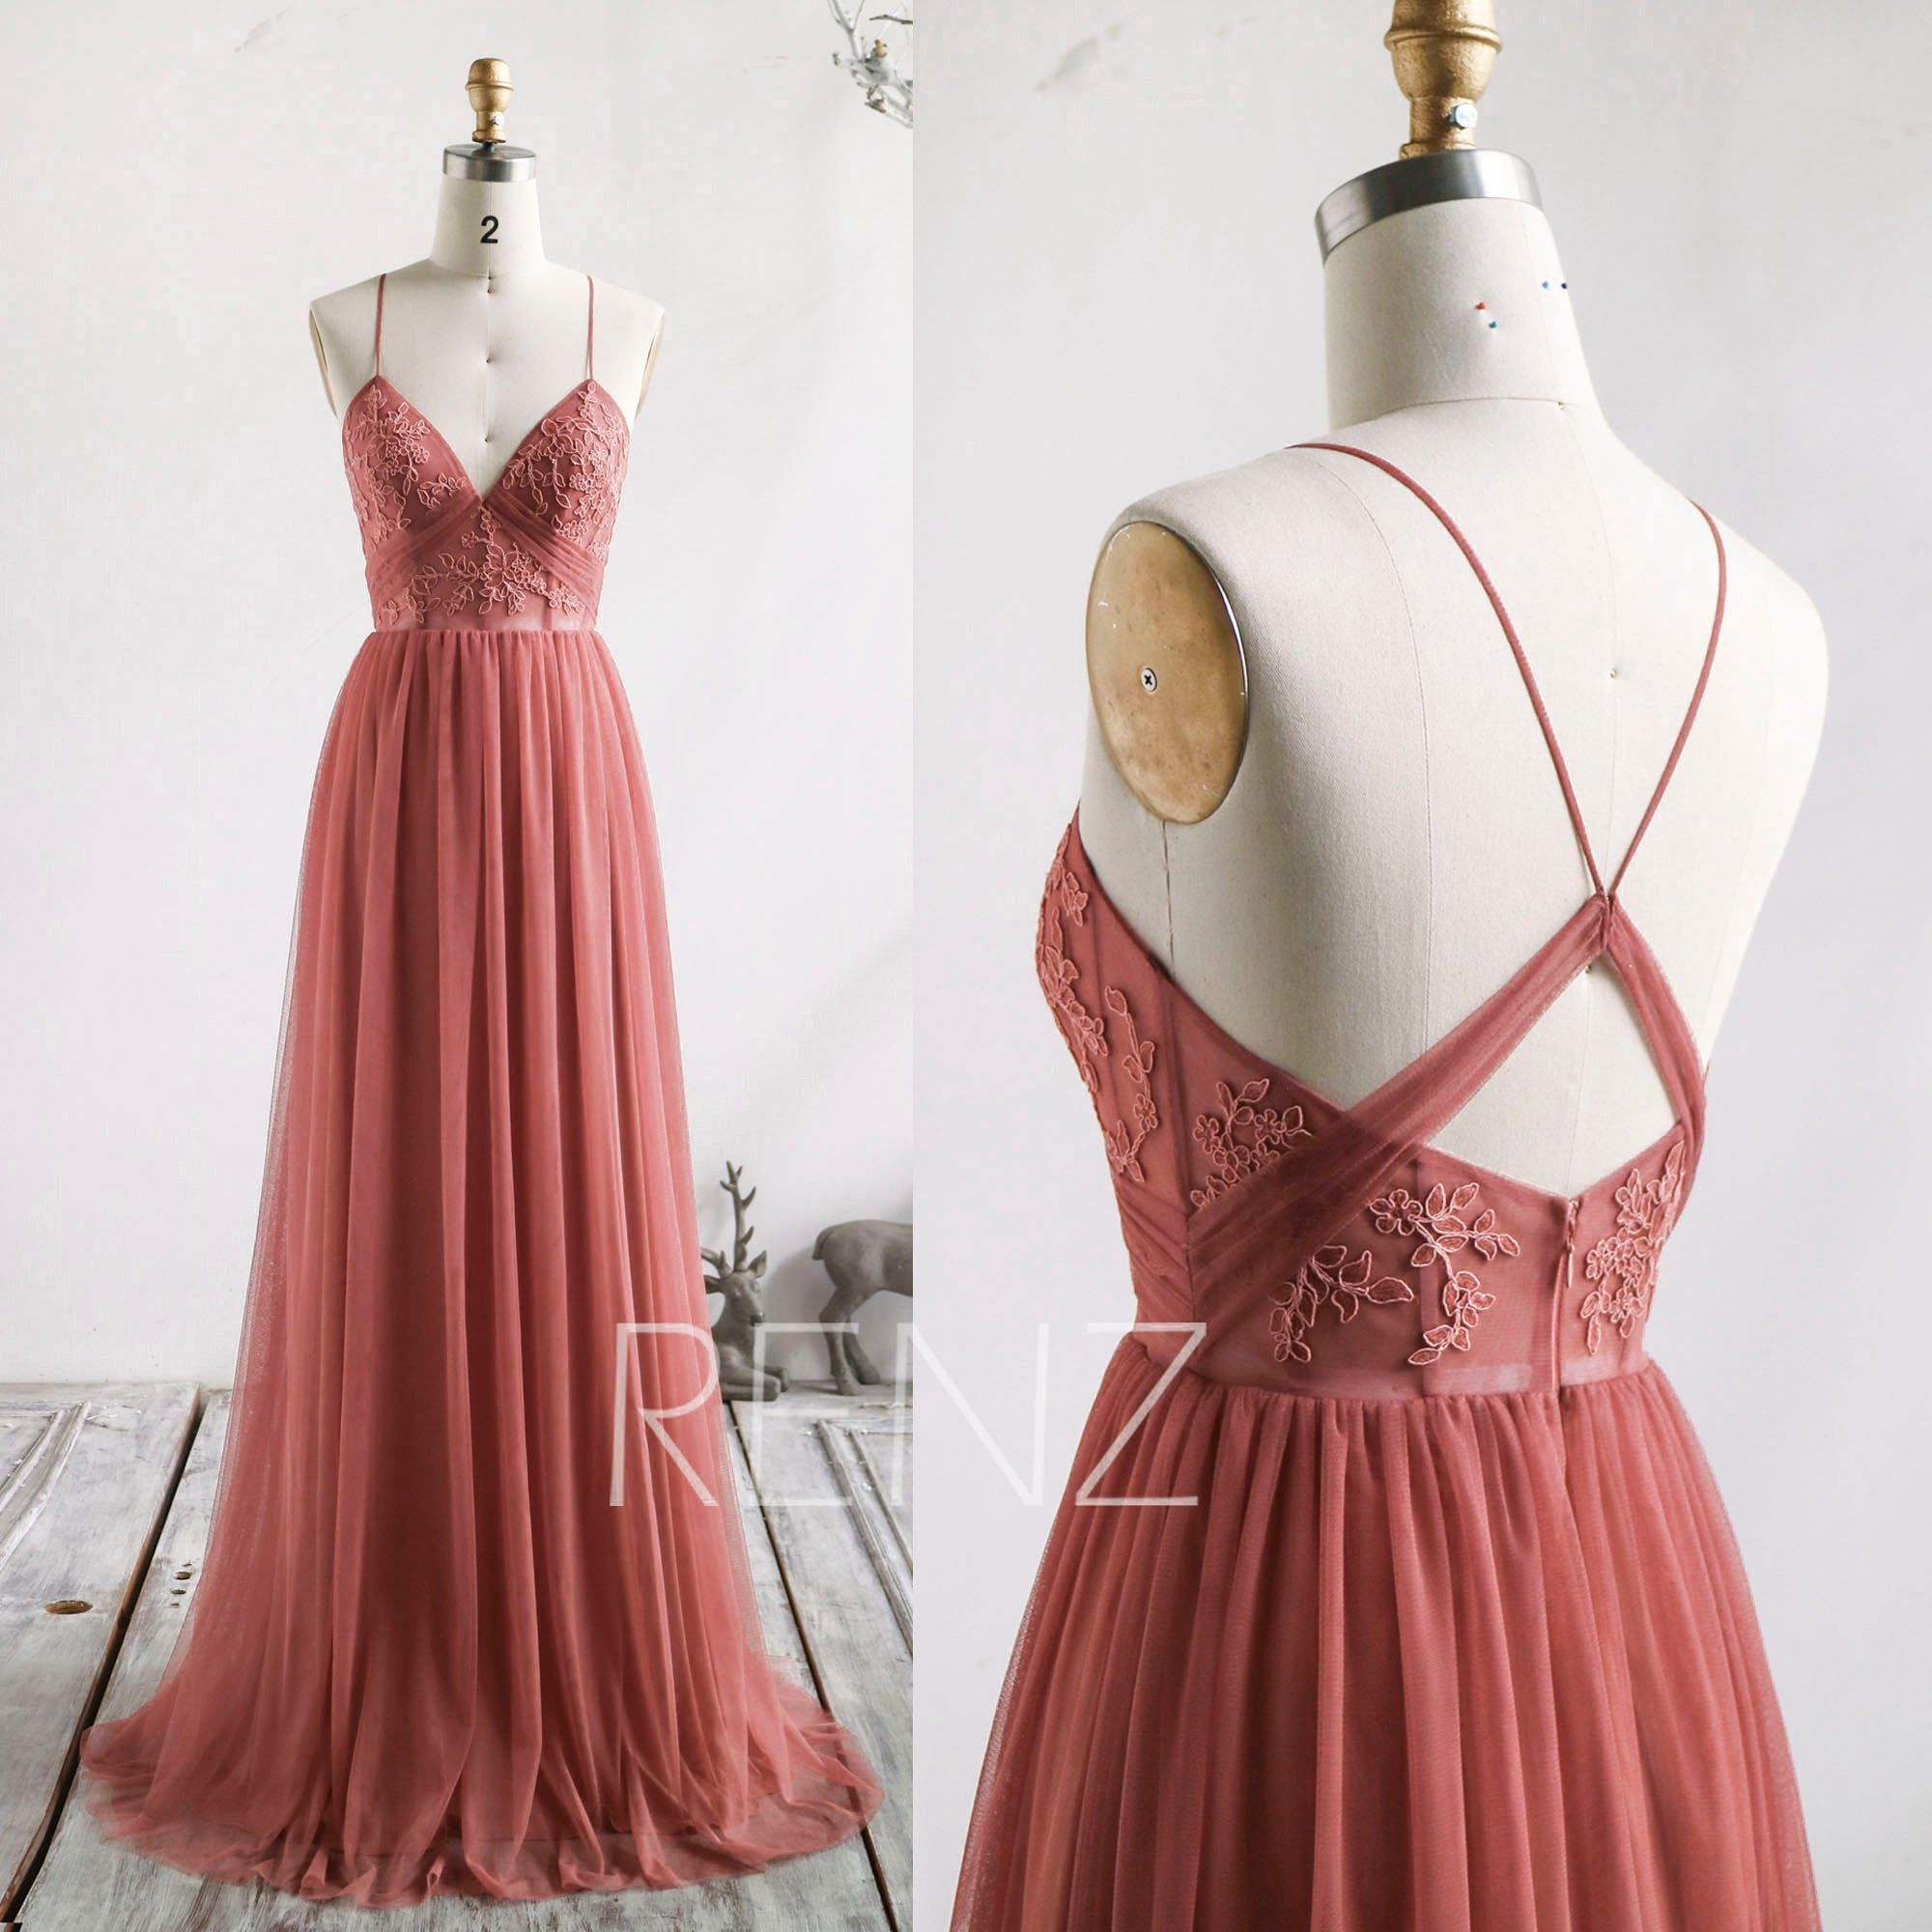 Bridesmaid Dress Canyon Rose Wedding Dress Boho Lace Applique Prom Dress Long V Neck A-line Formal Dress Puffy Tulle Wedding Gown (HS837) -   17 dress Bridesmaid tulle ideas